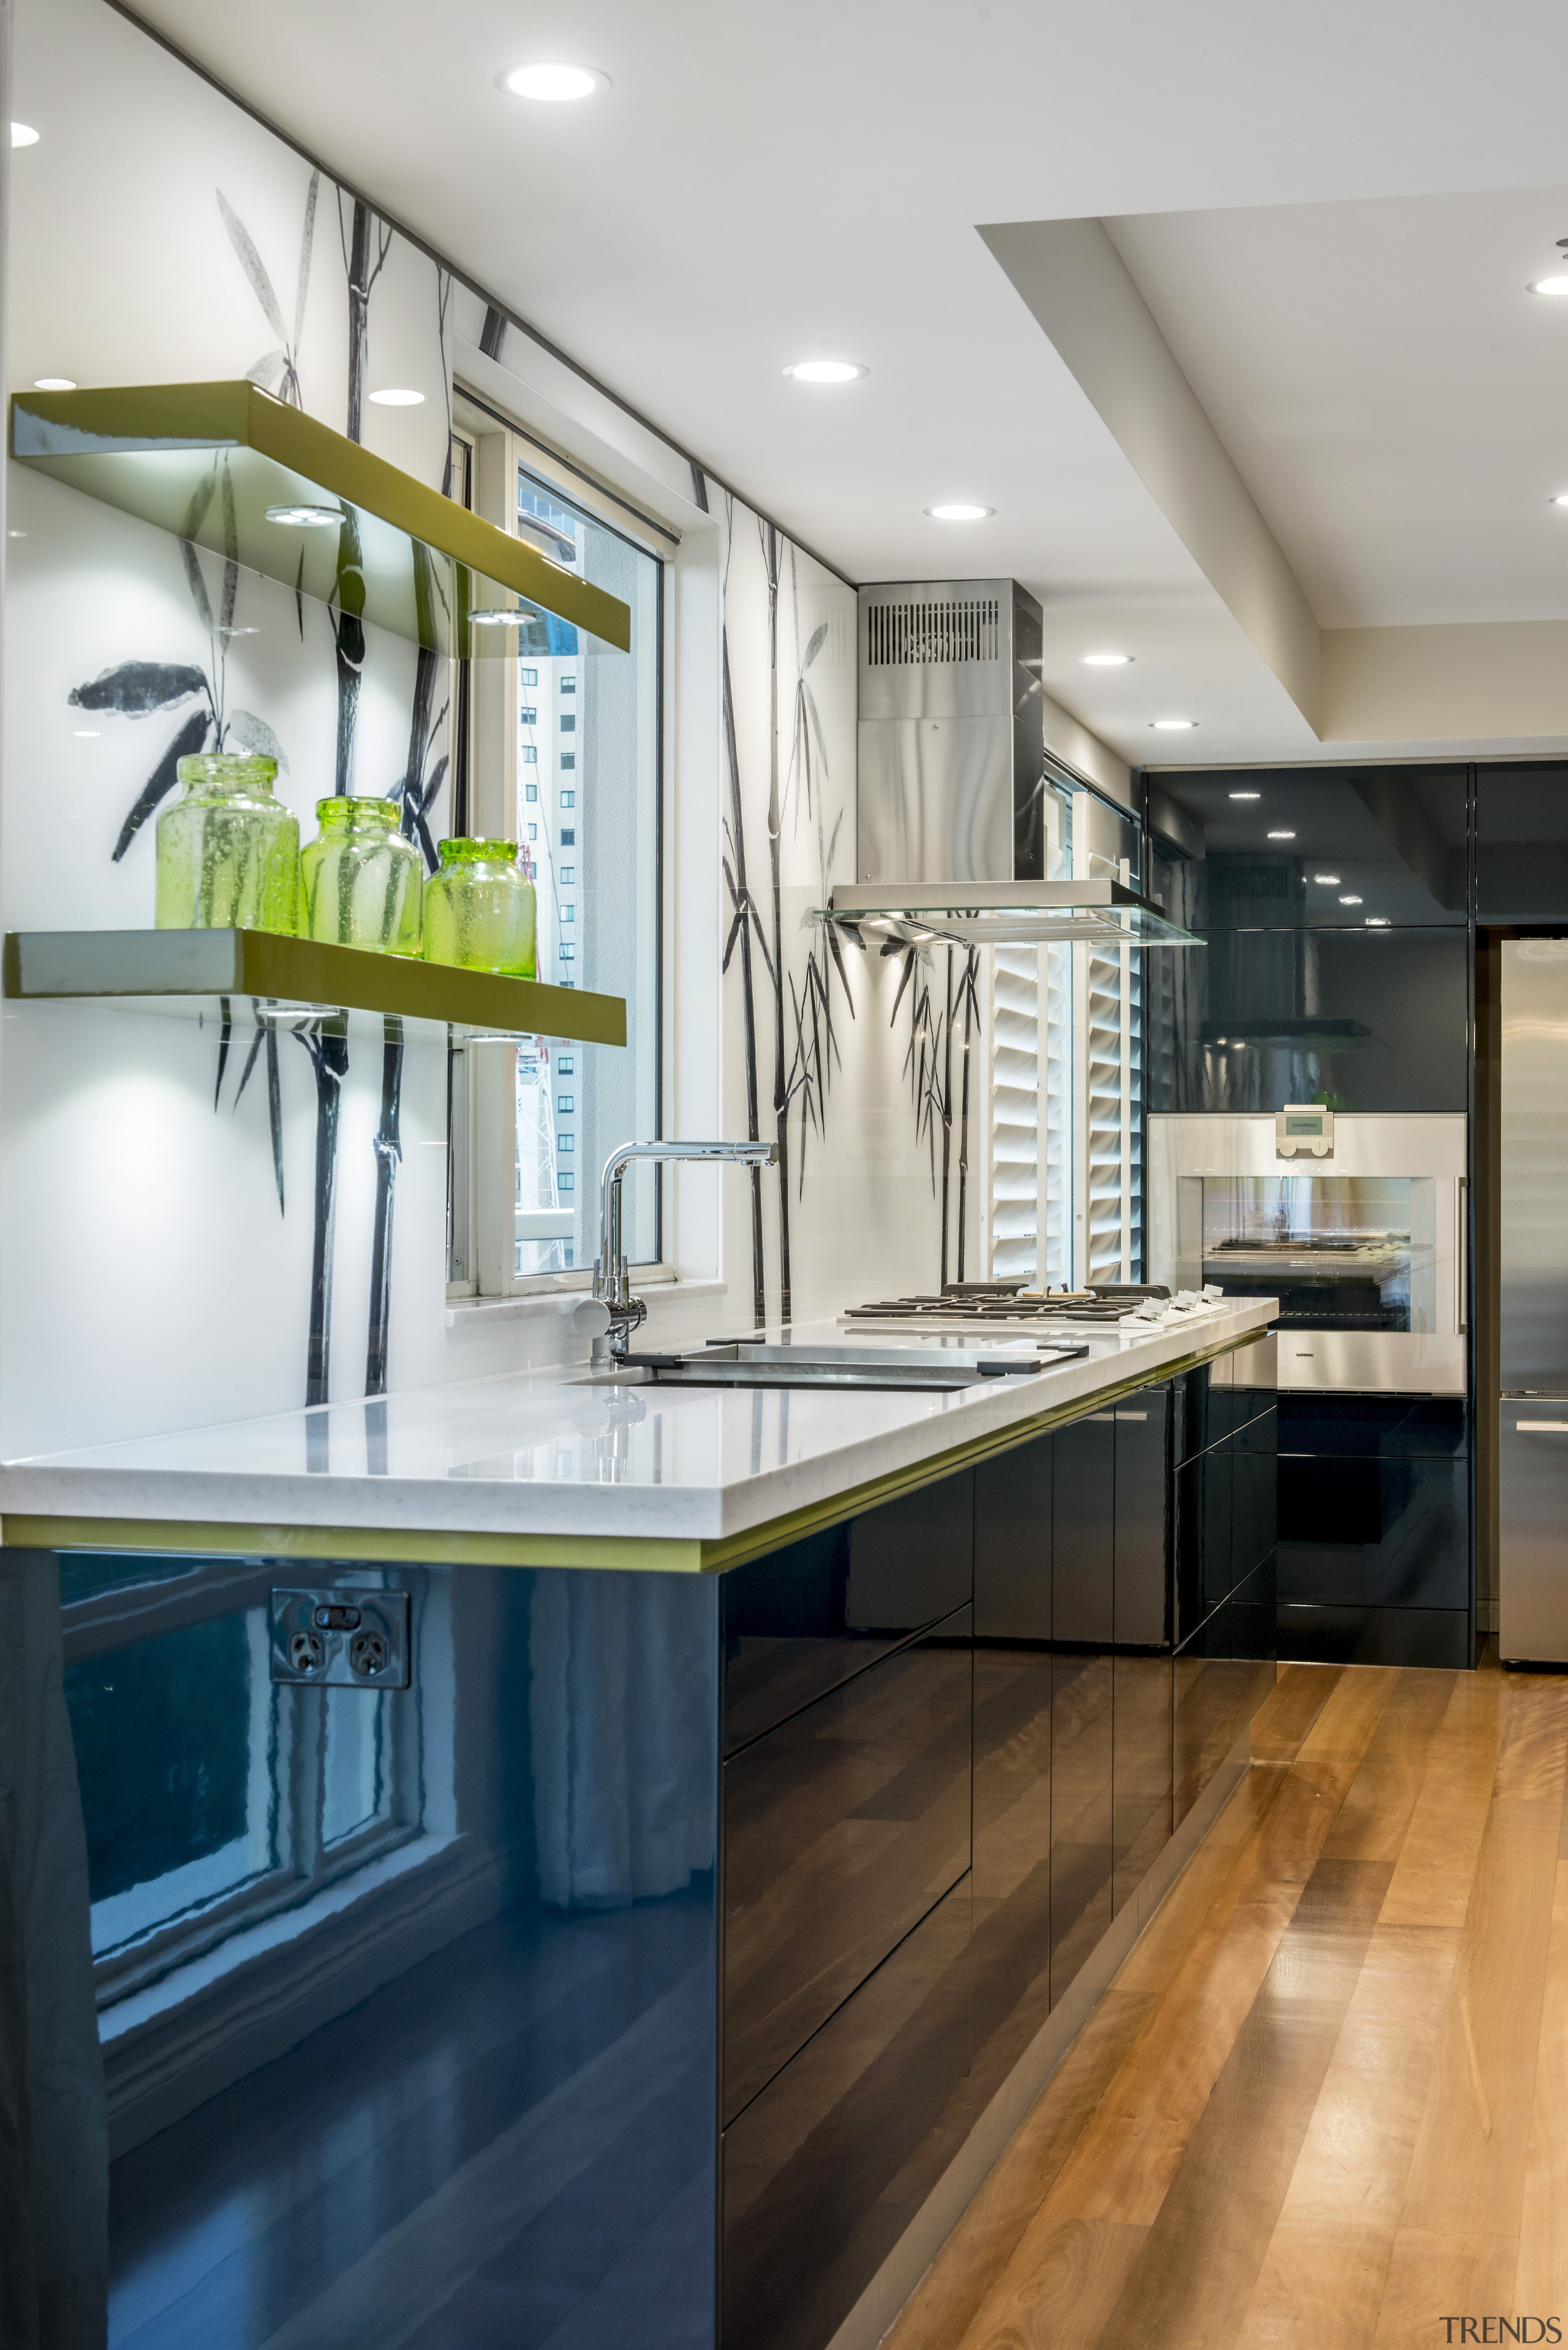 A custom backpainted glass splashback featuring bamboo plants cabinetry, countertop, interior design, kitchen, room, gray